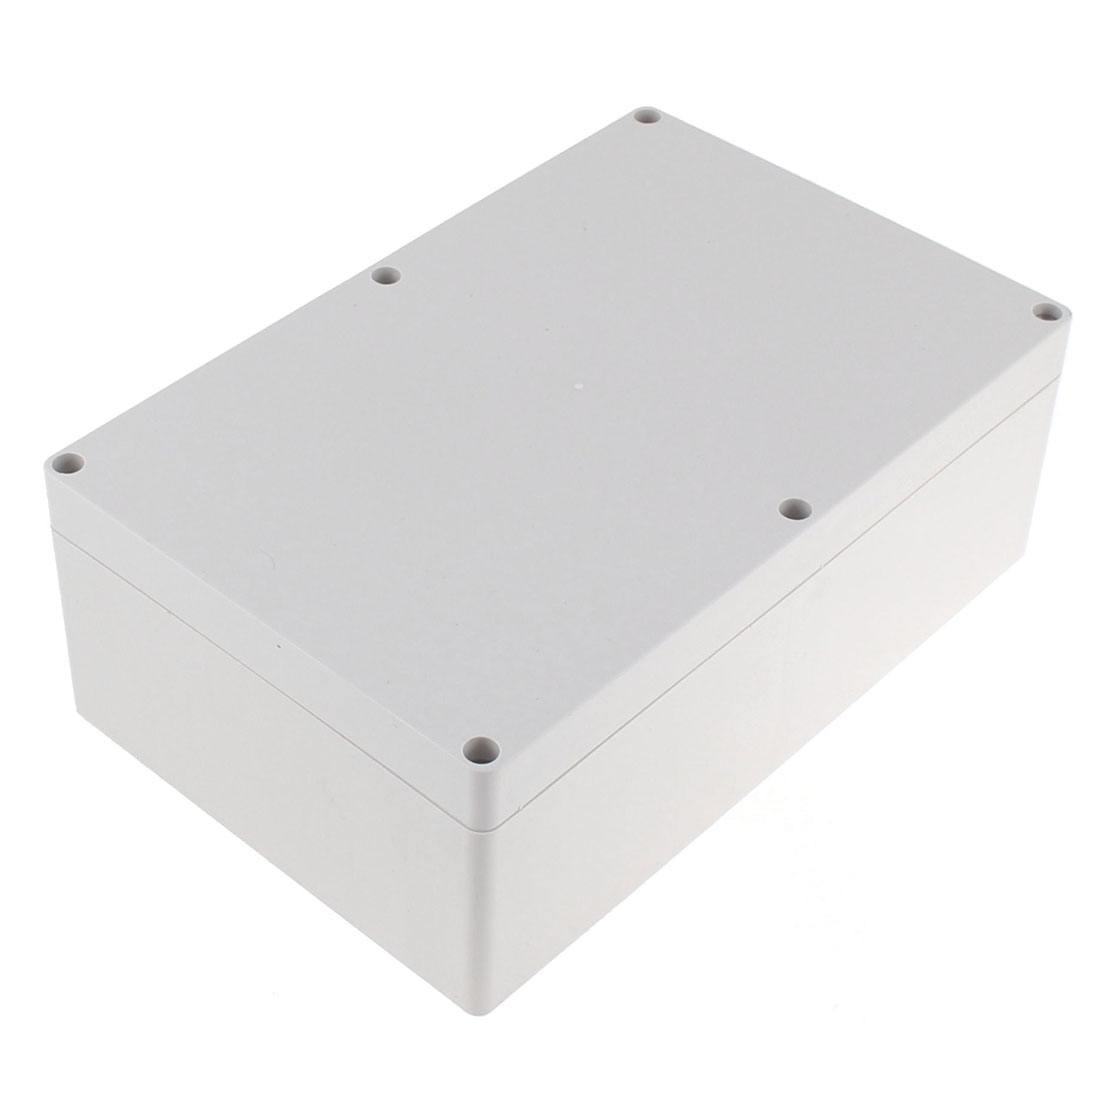 230mm x 150mm x 85mm Outdoor Electrical Enclosure Junction Box Case Gray